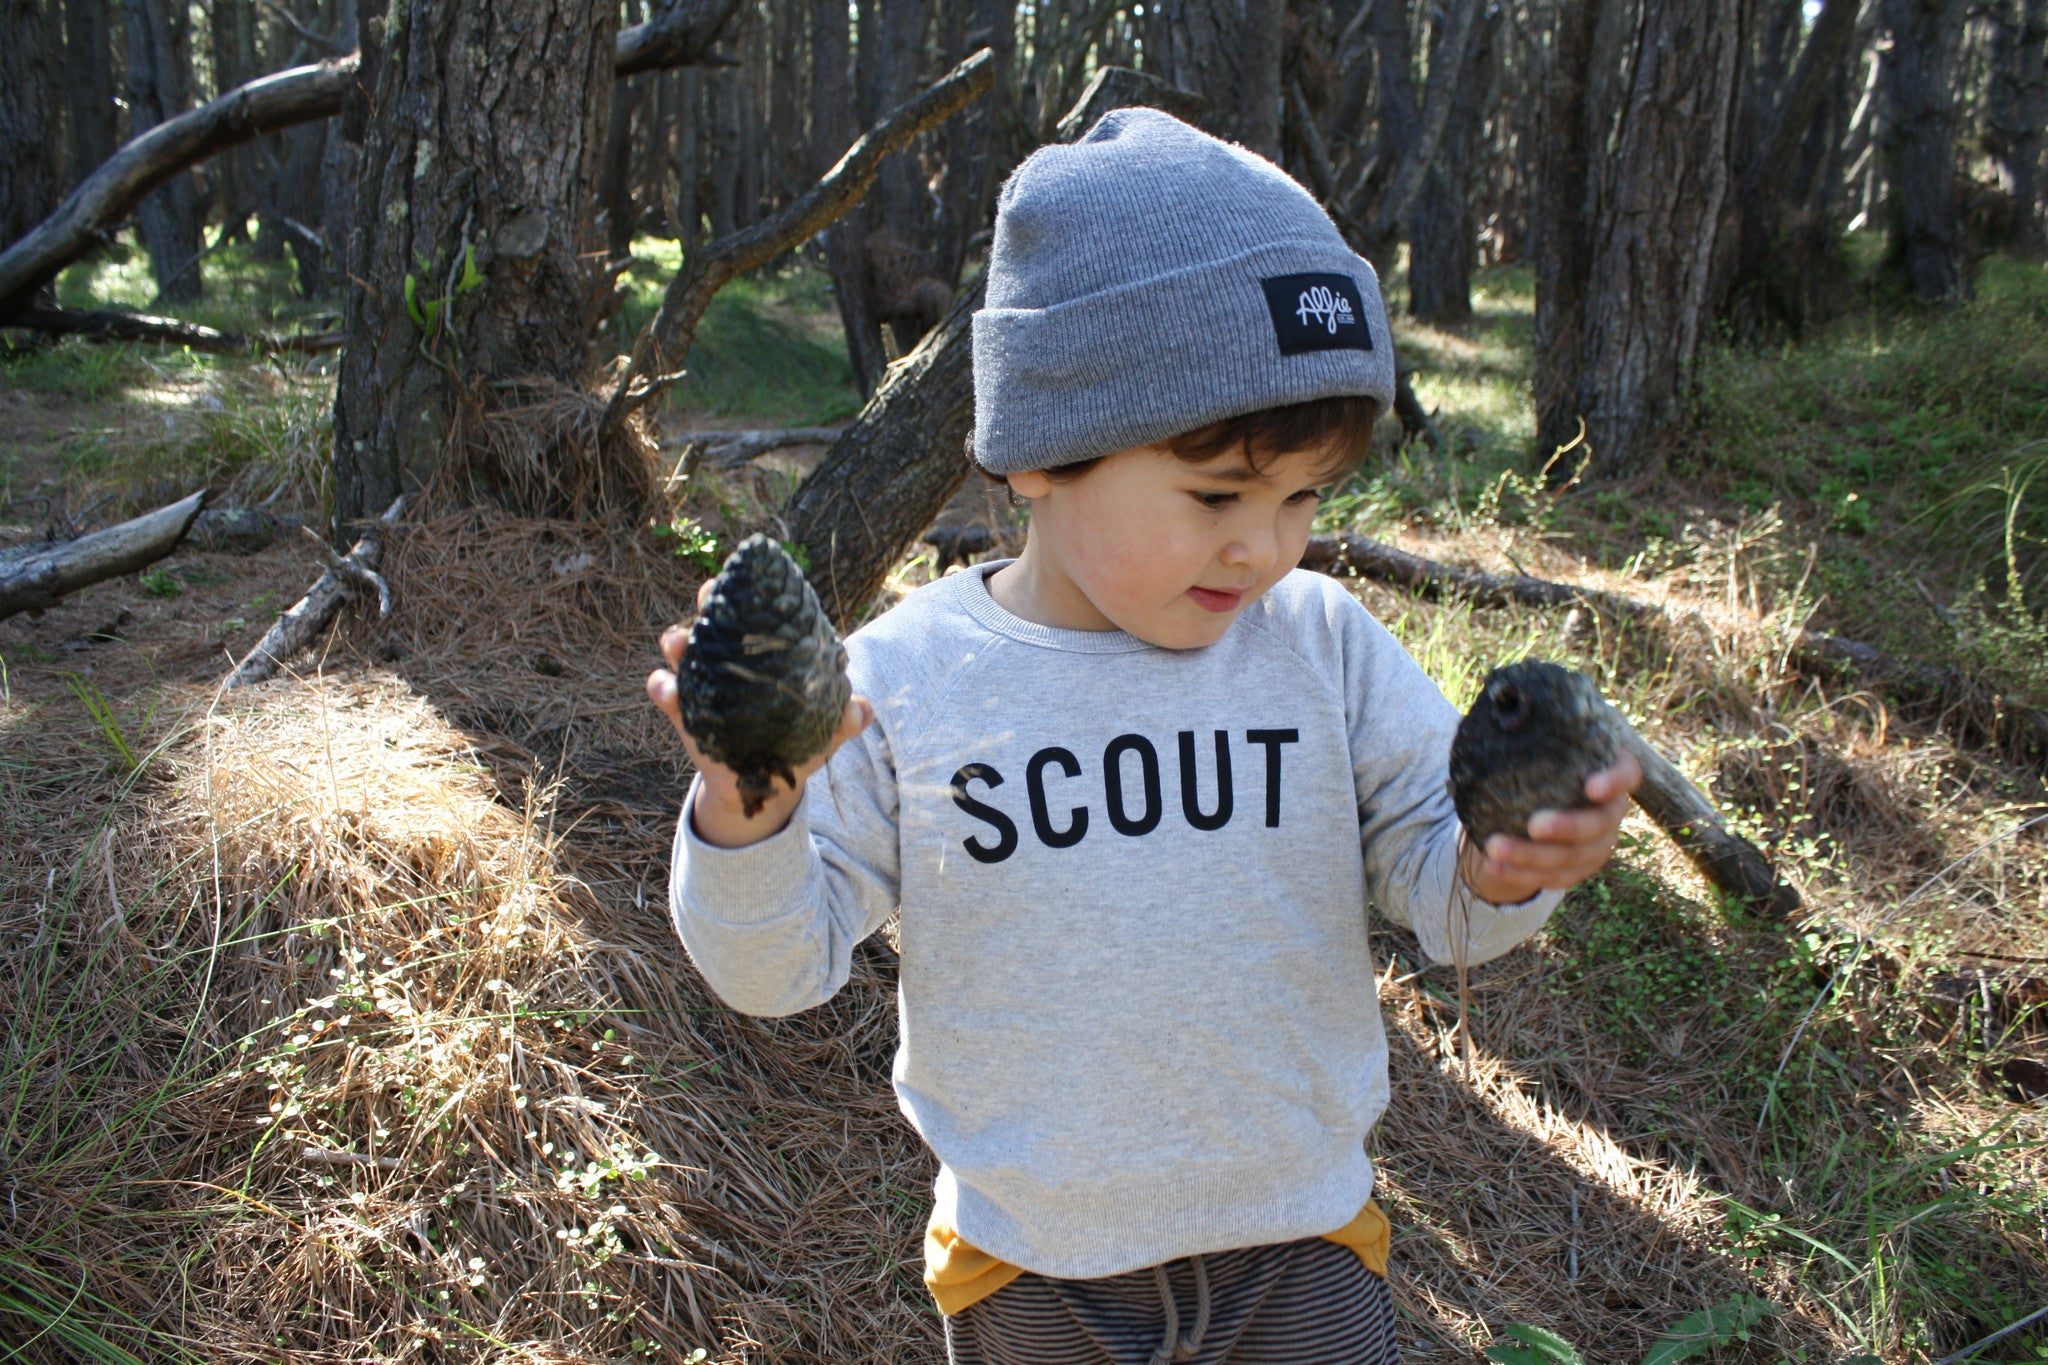 We found some pinecones, put them in the bag and keep searching. Free fun things to do with your kids these Easter holidays. Brought to you by Wilechile Boutique